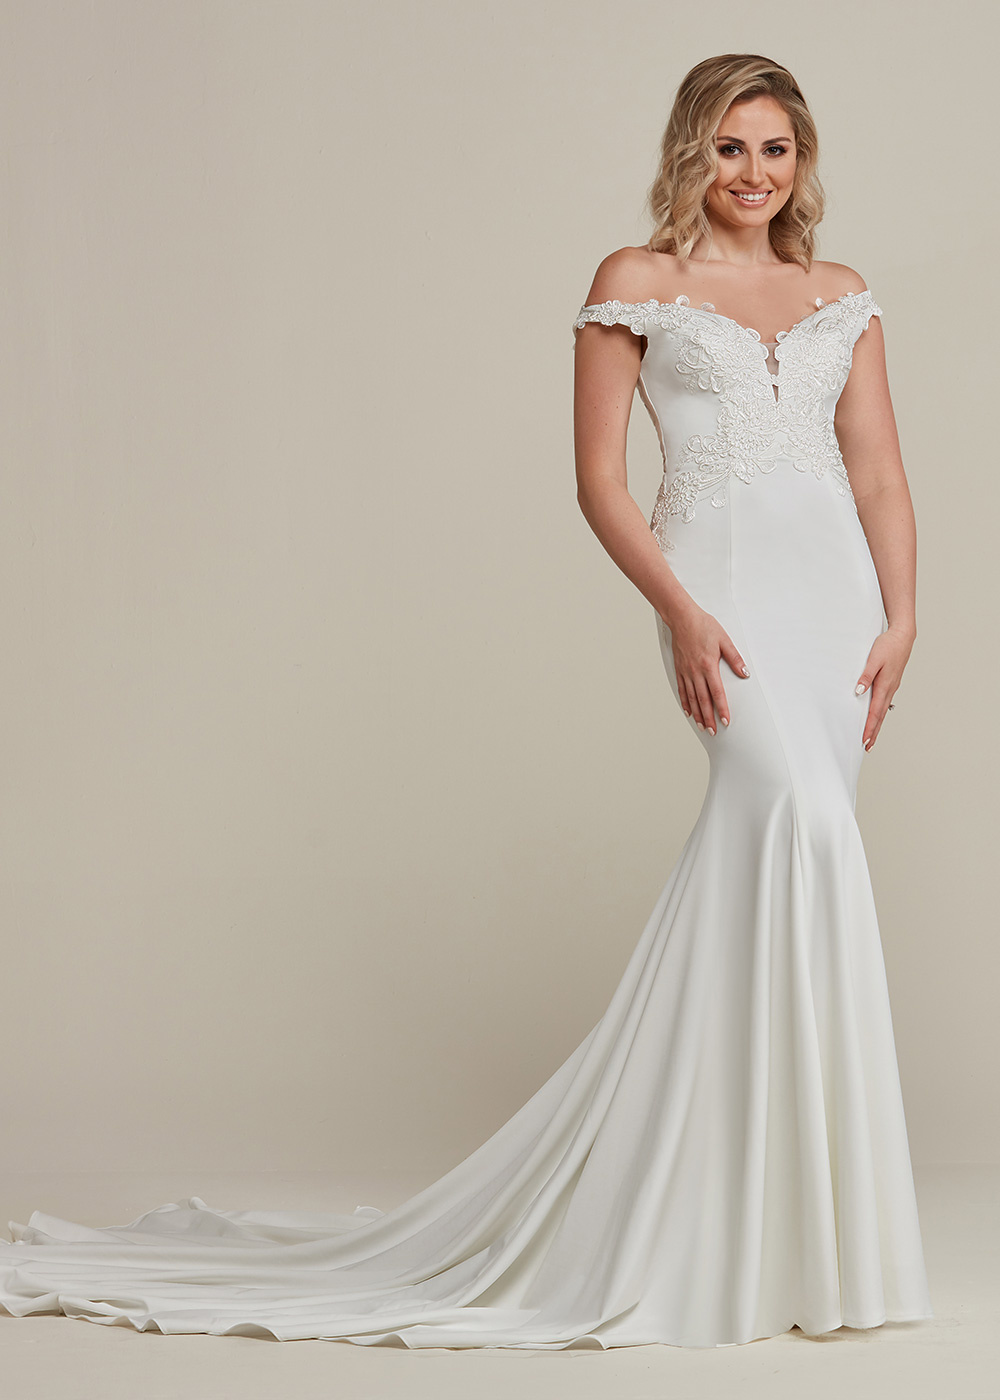 TH-Sienna TH Wedding Dresses By Ashdon